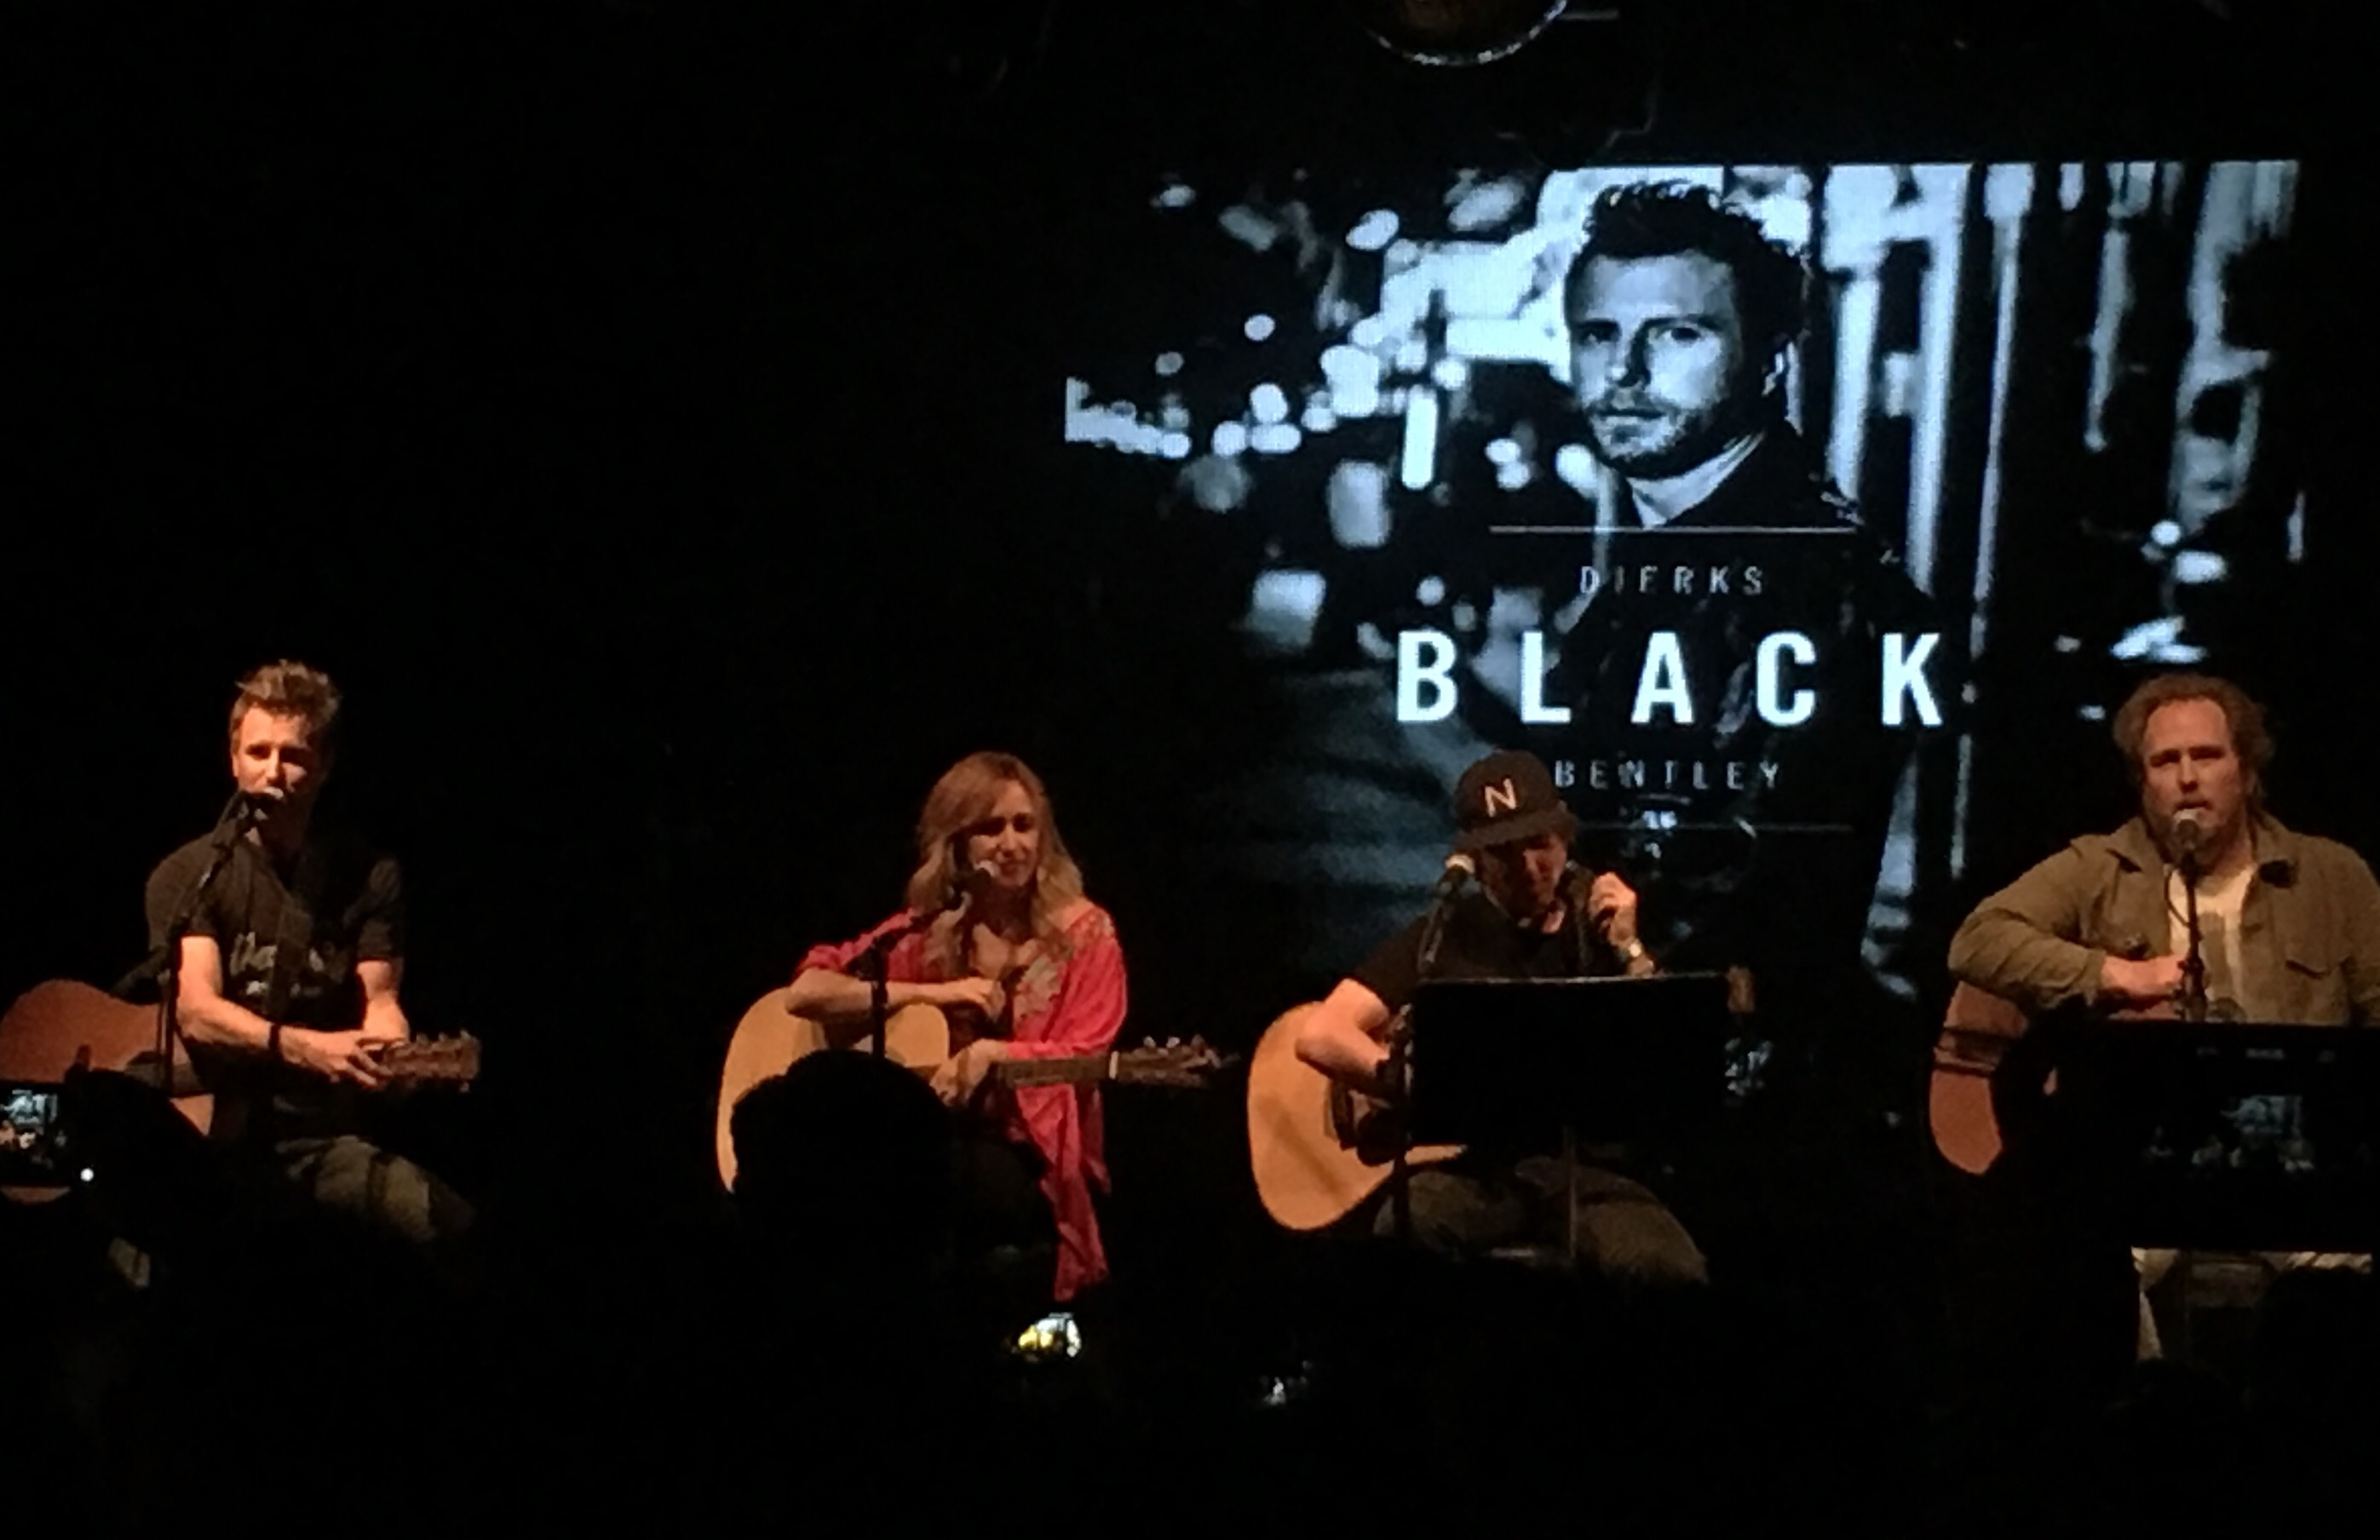 Dierks Bentley Hits Nyc With His Last Call Ball Songs From The Album Black The Shotgun Seat